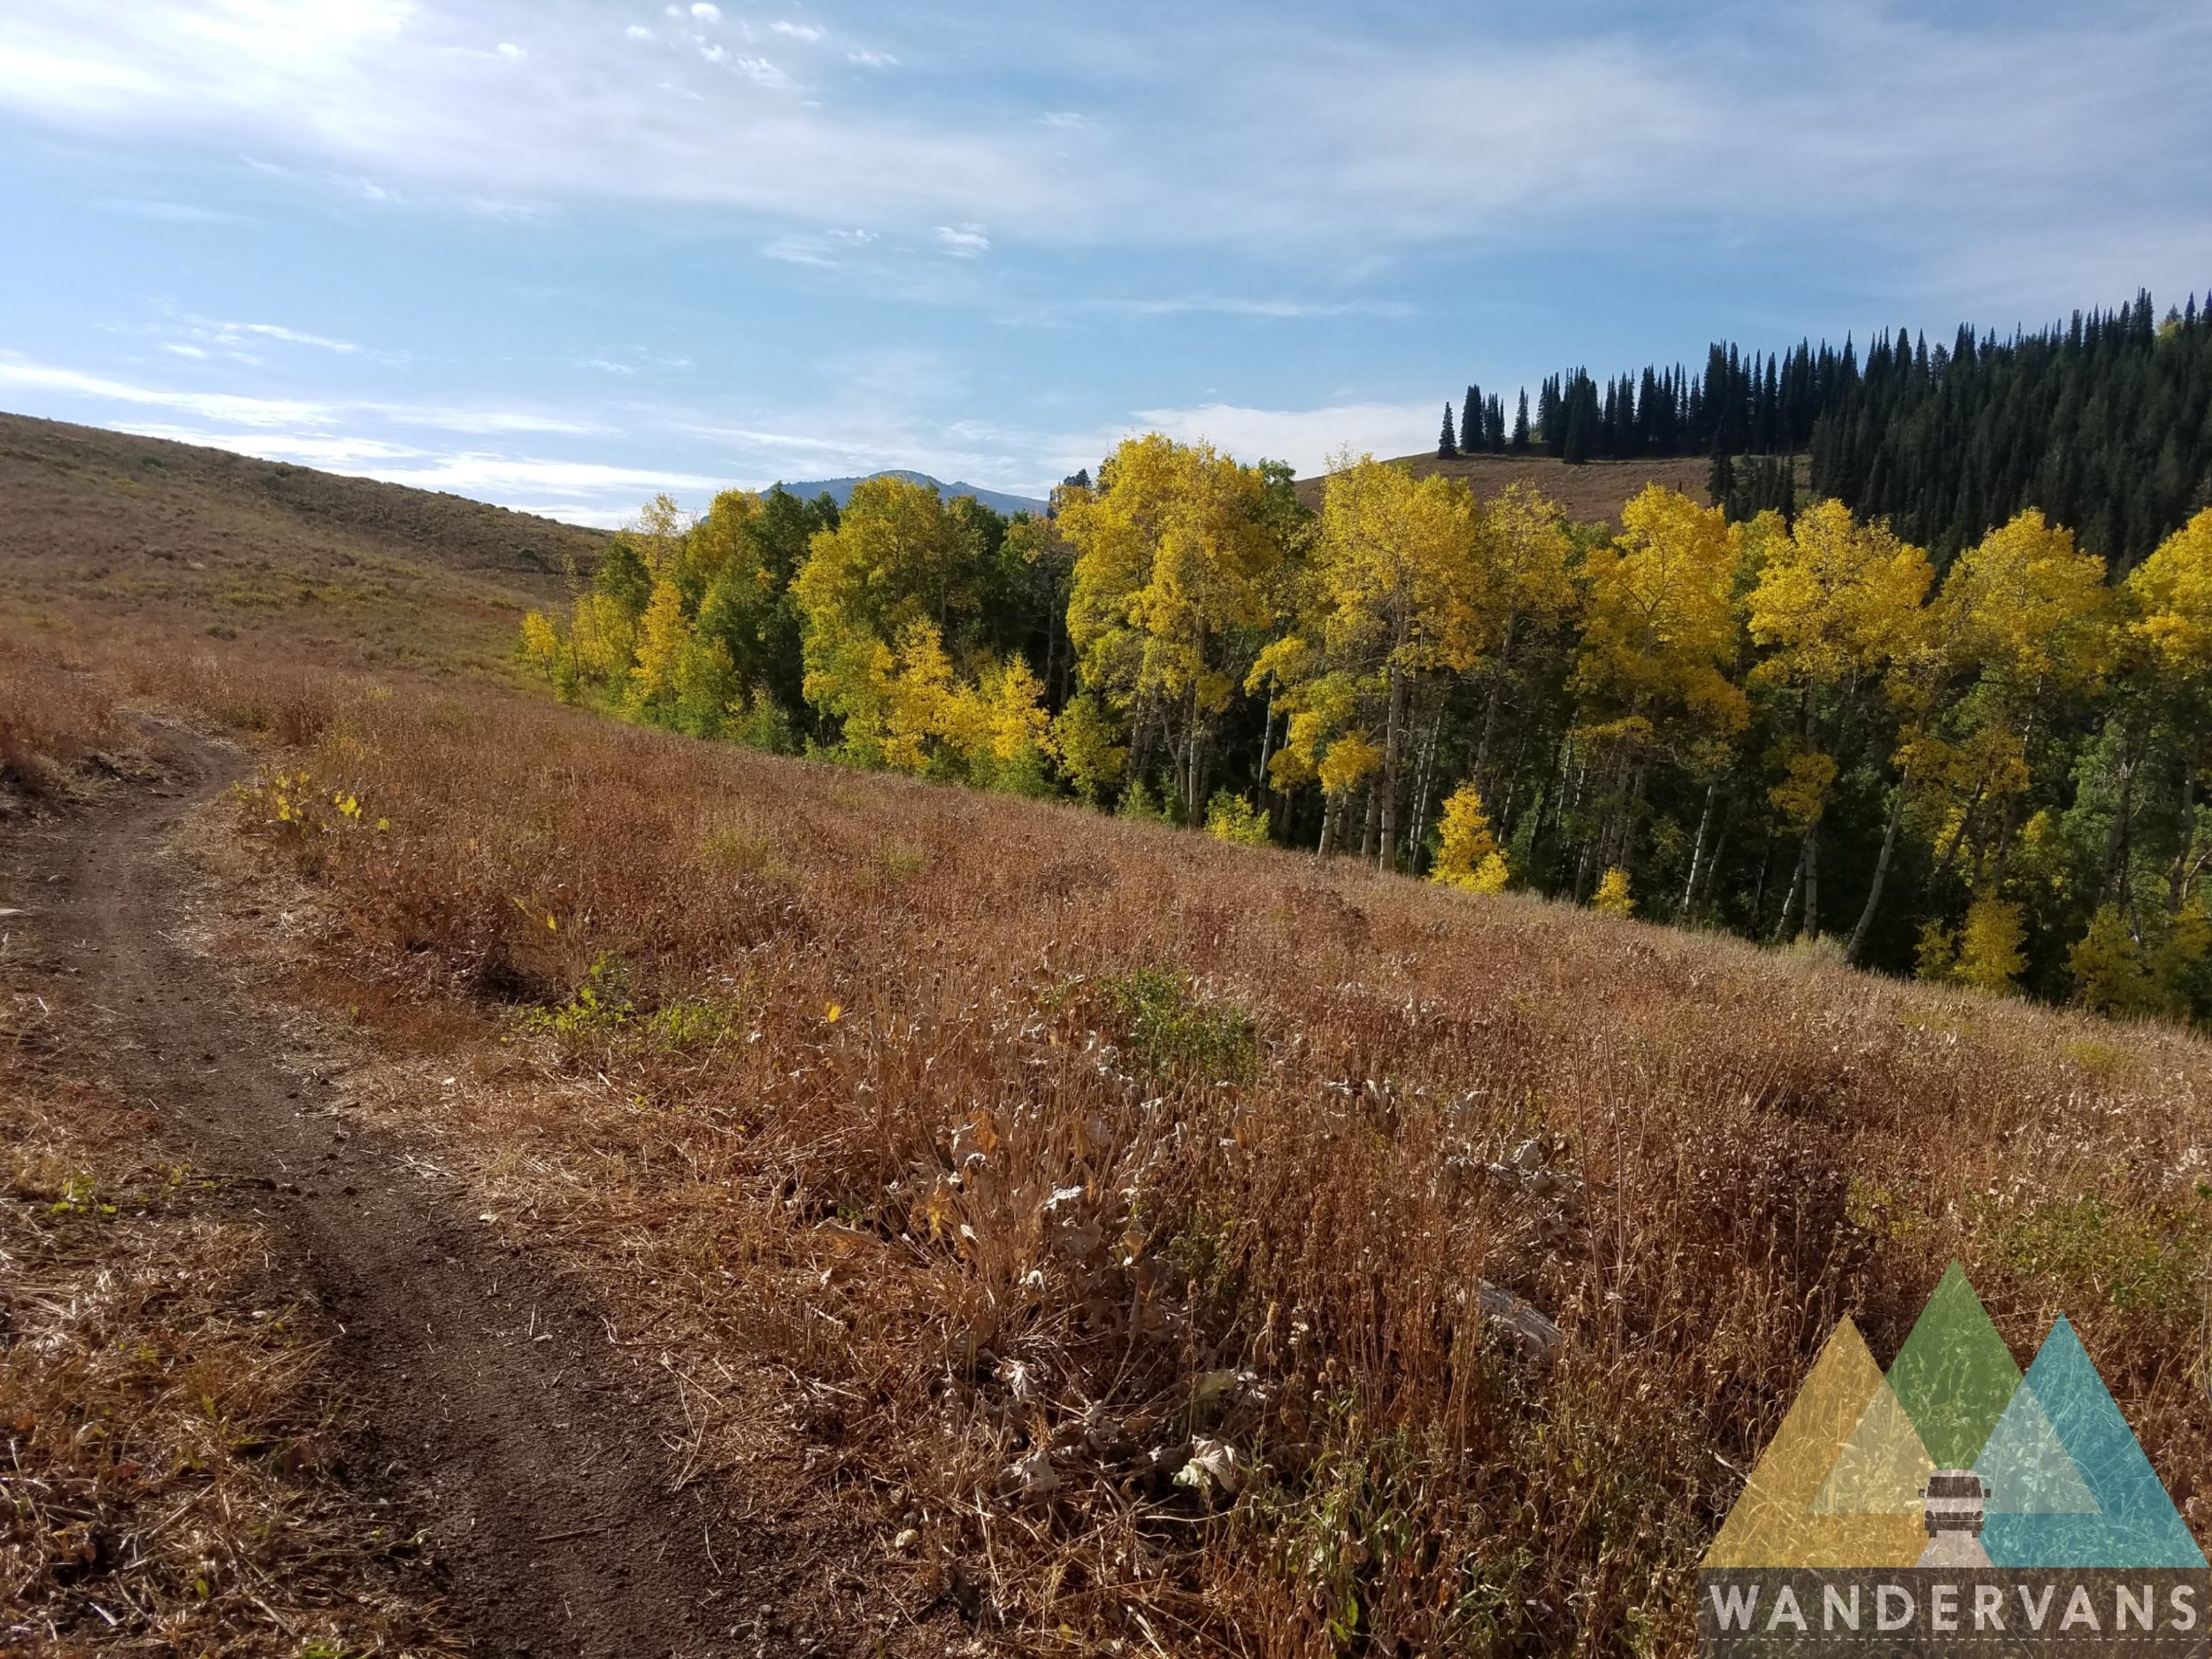 vanlife-rv-campervan-rent-idaho-sun-valley-boise-wandervans-wanderlust-skiing-backcountry-snowboard-sawtooth-targee-driggs-jackson-biking